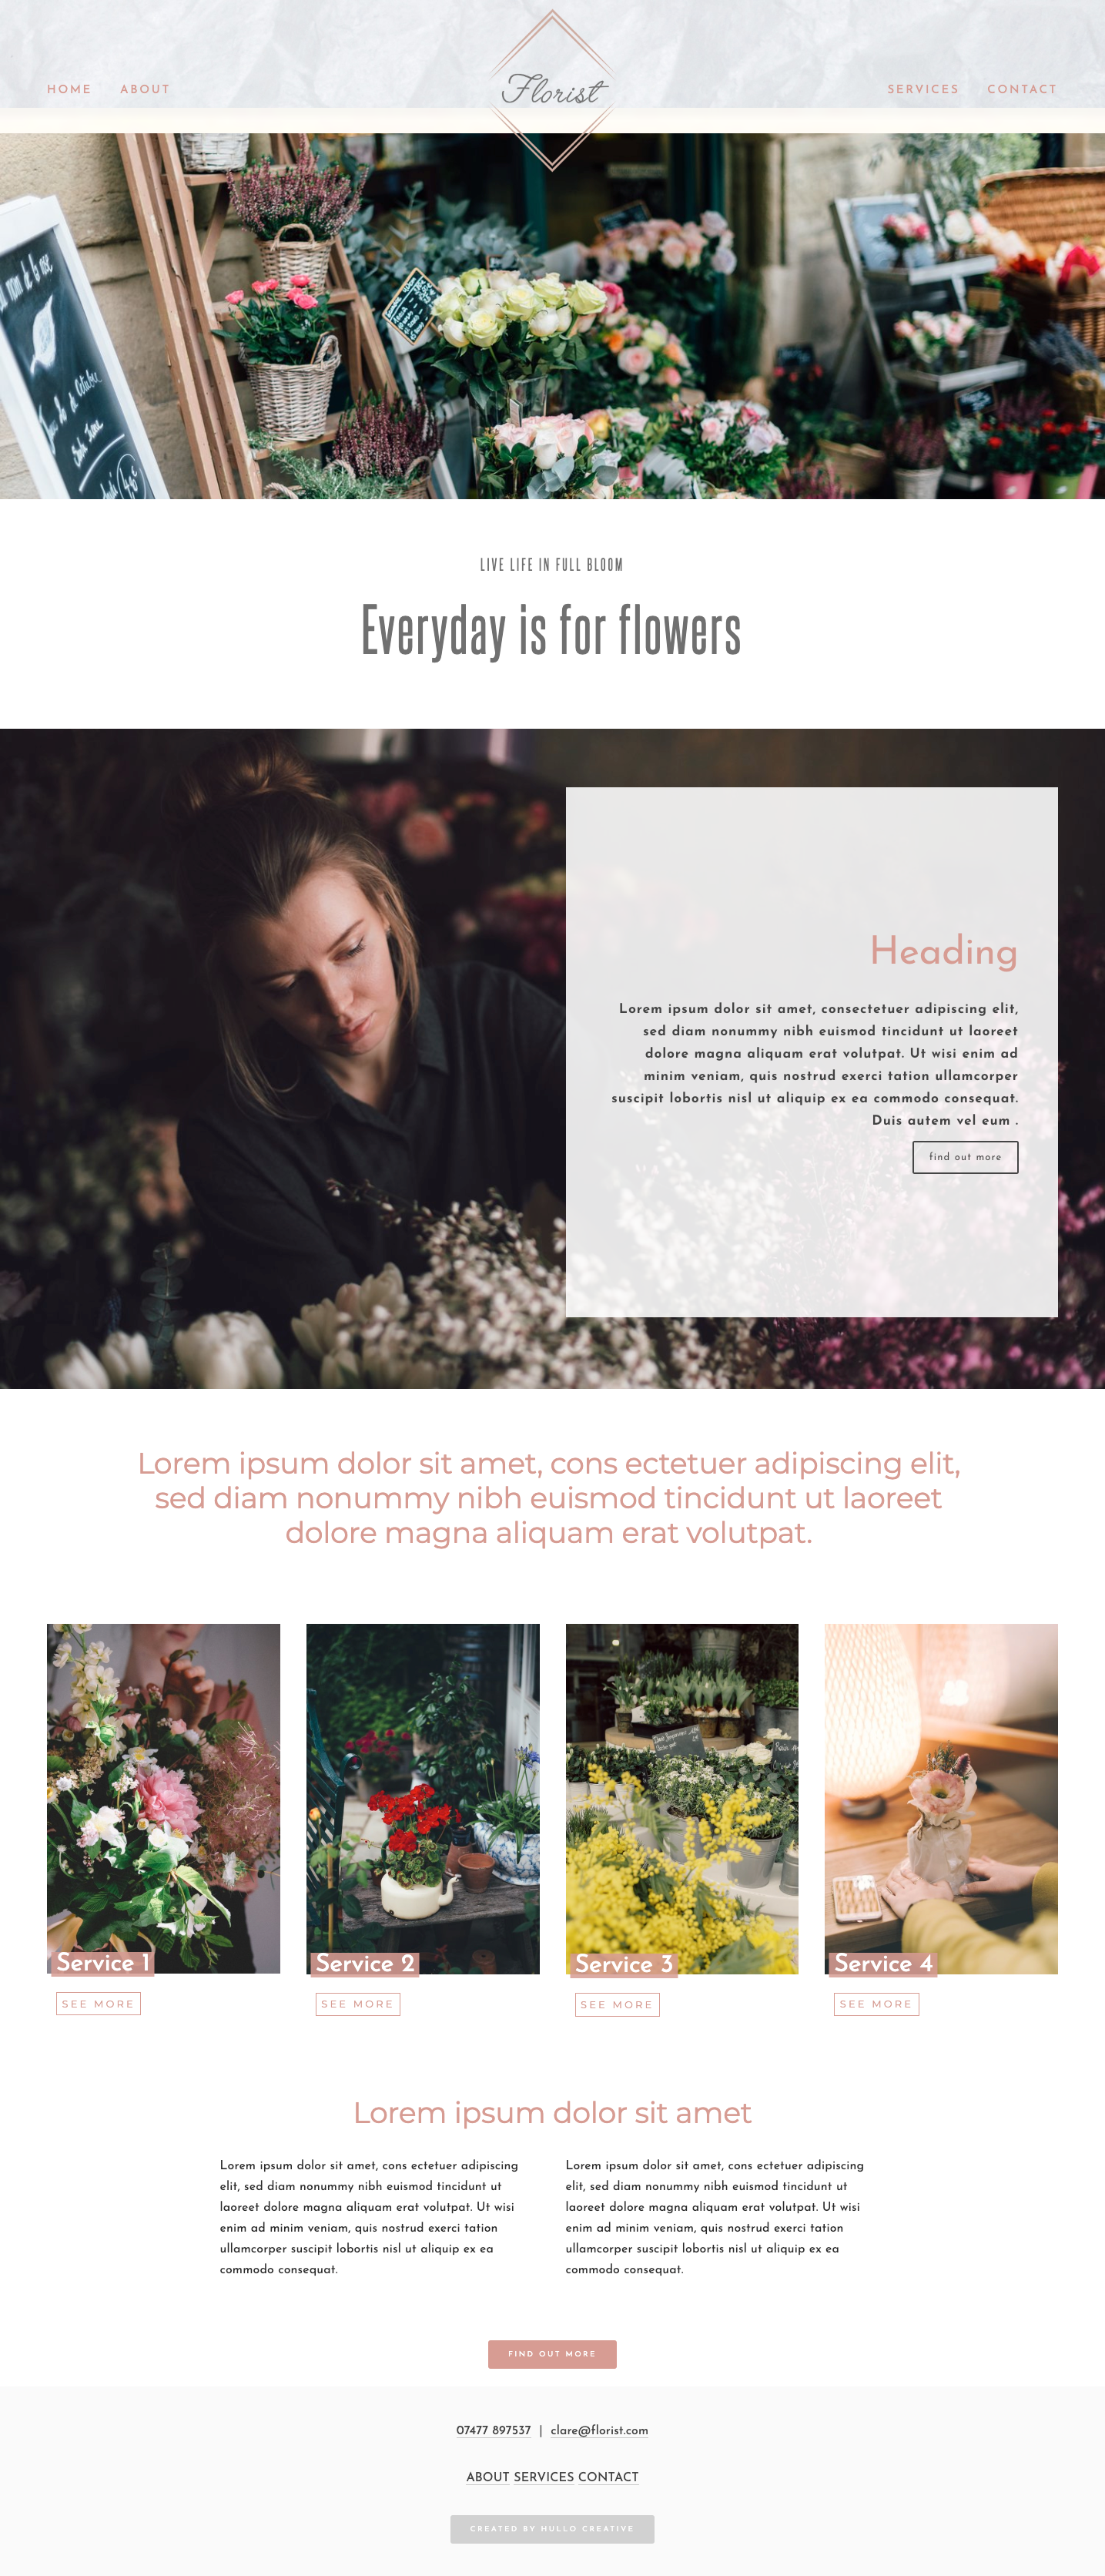 screencapture-story-template-squarespace-2019-07-22-12_02_14.png